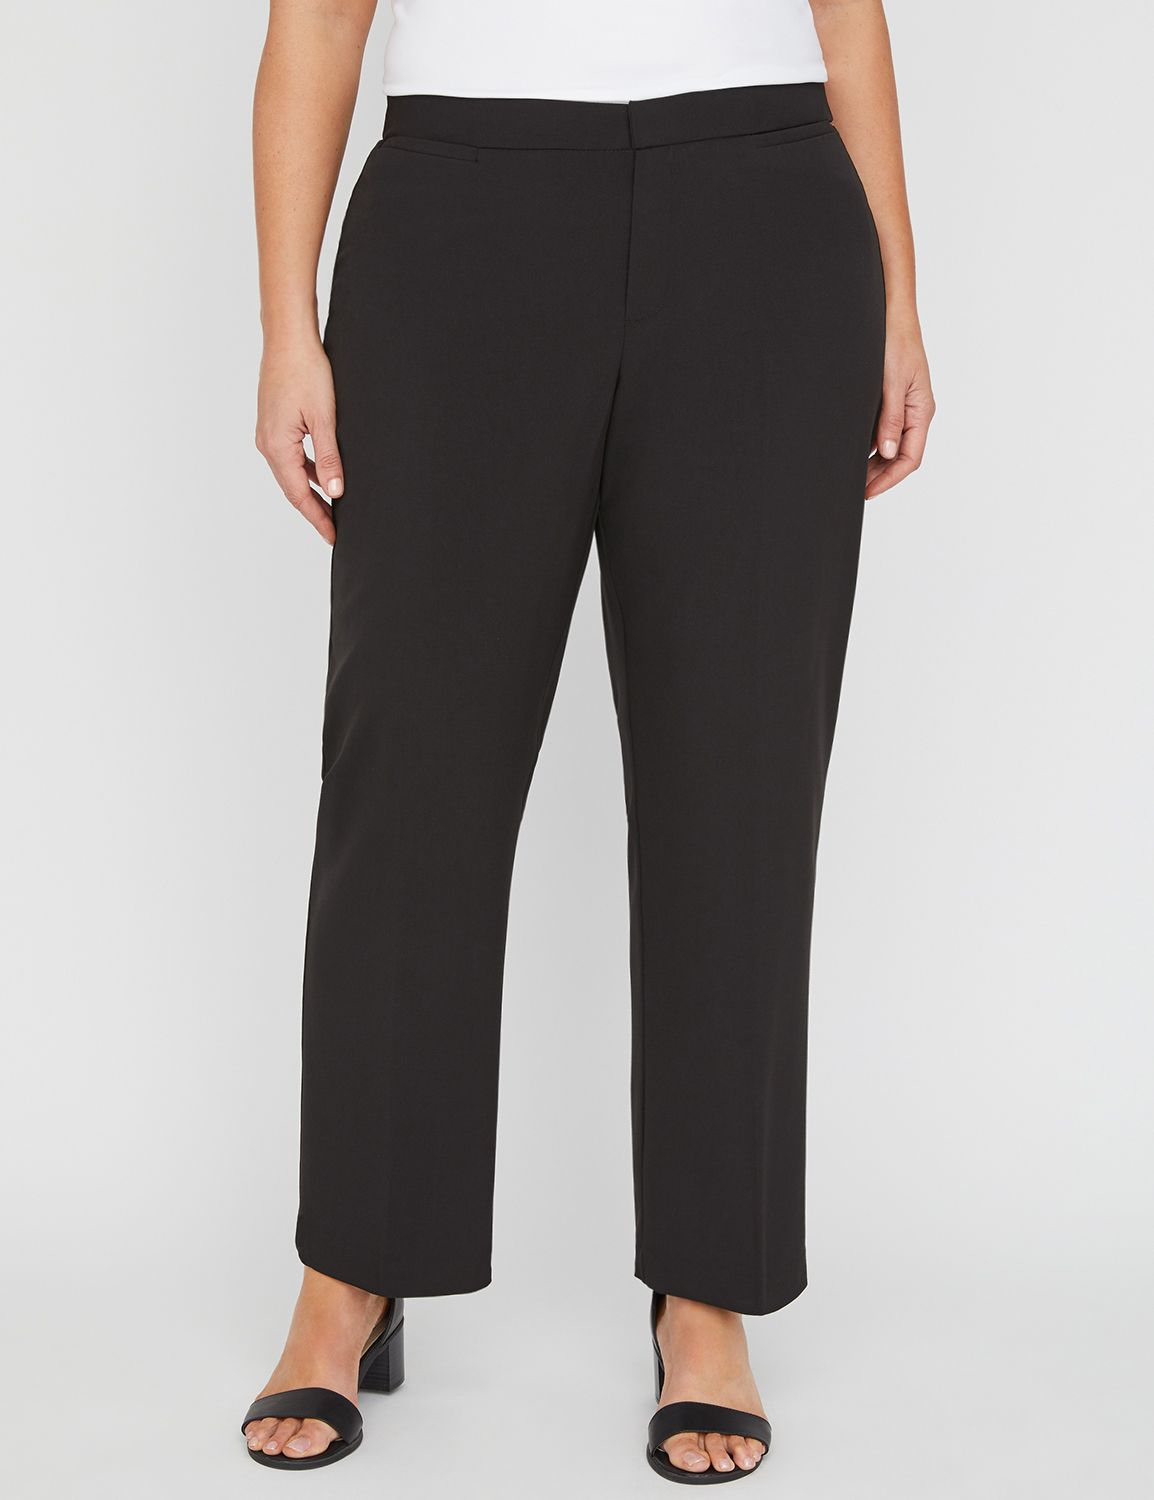 Right Fit Pant (Moderately Curvy) Right Fit Pant (Moderately Curvy) MP-300009906